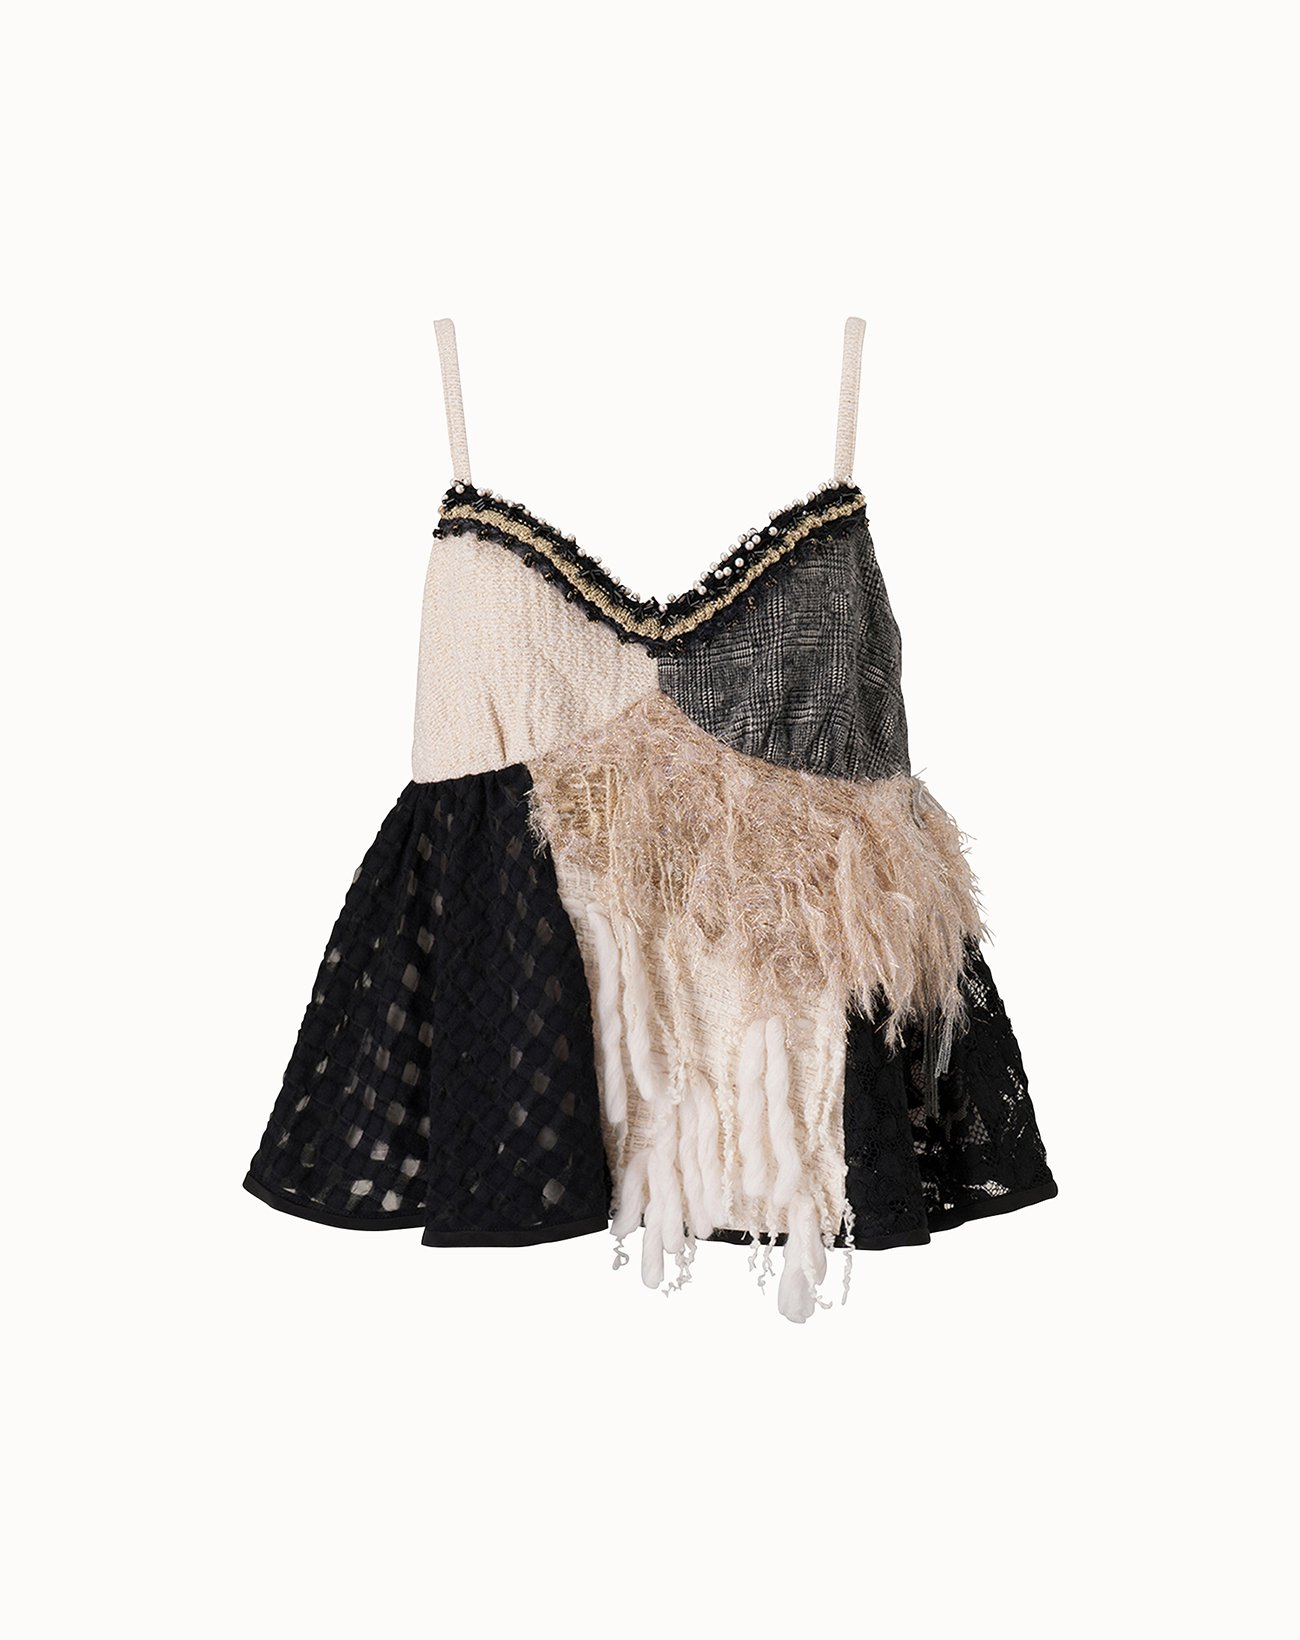 Roving Tweed Camisole - Off White